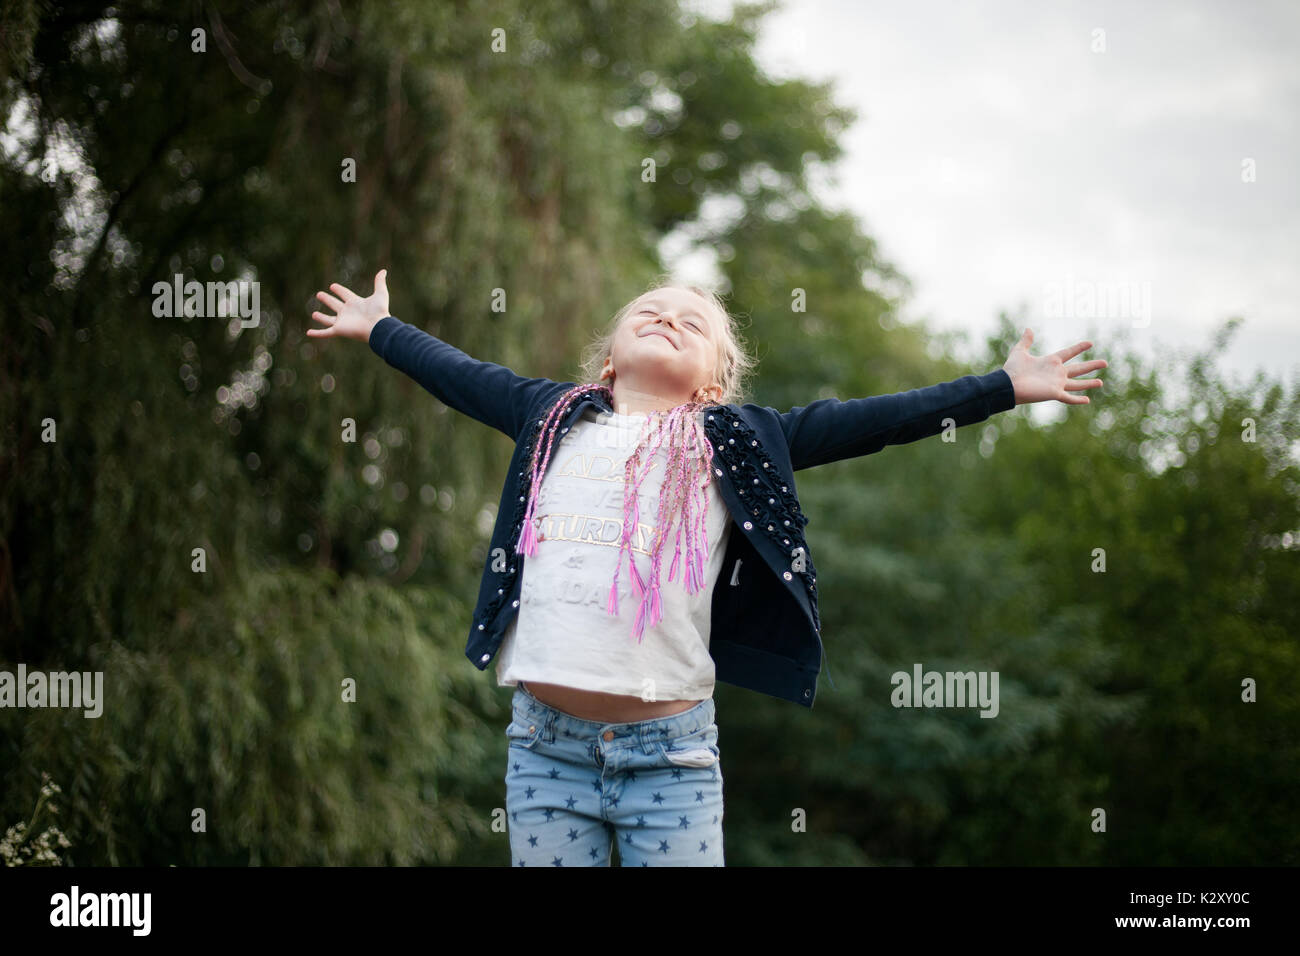 Child girl smiles, feels happy, joy and pleasure on walk. She opened her hands to side and closed her eyes. - Stock Image